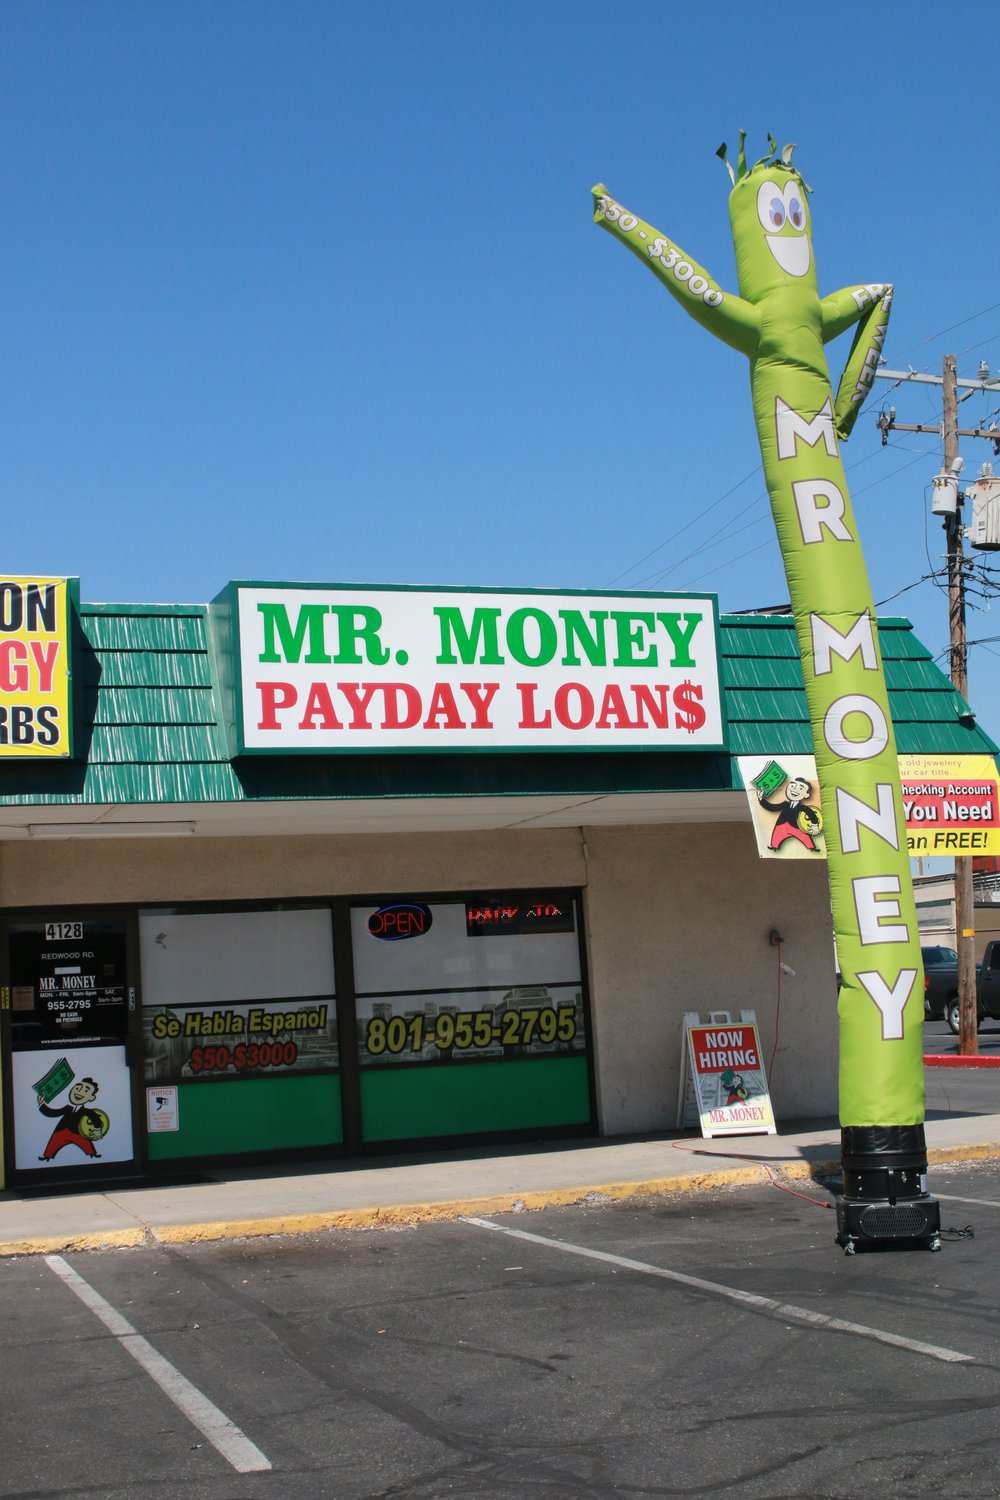 Mr. Money Payday Loans cover